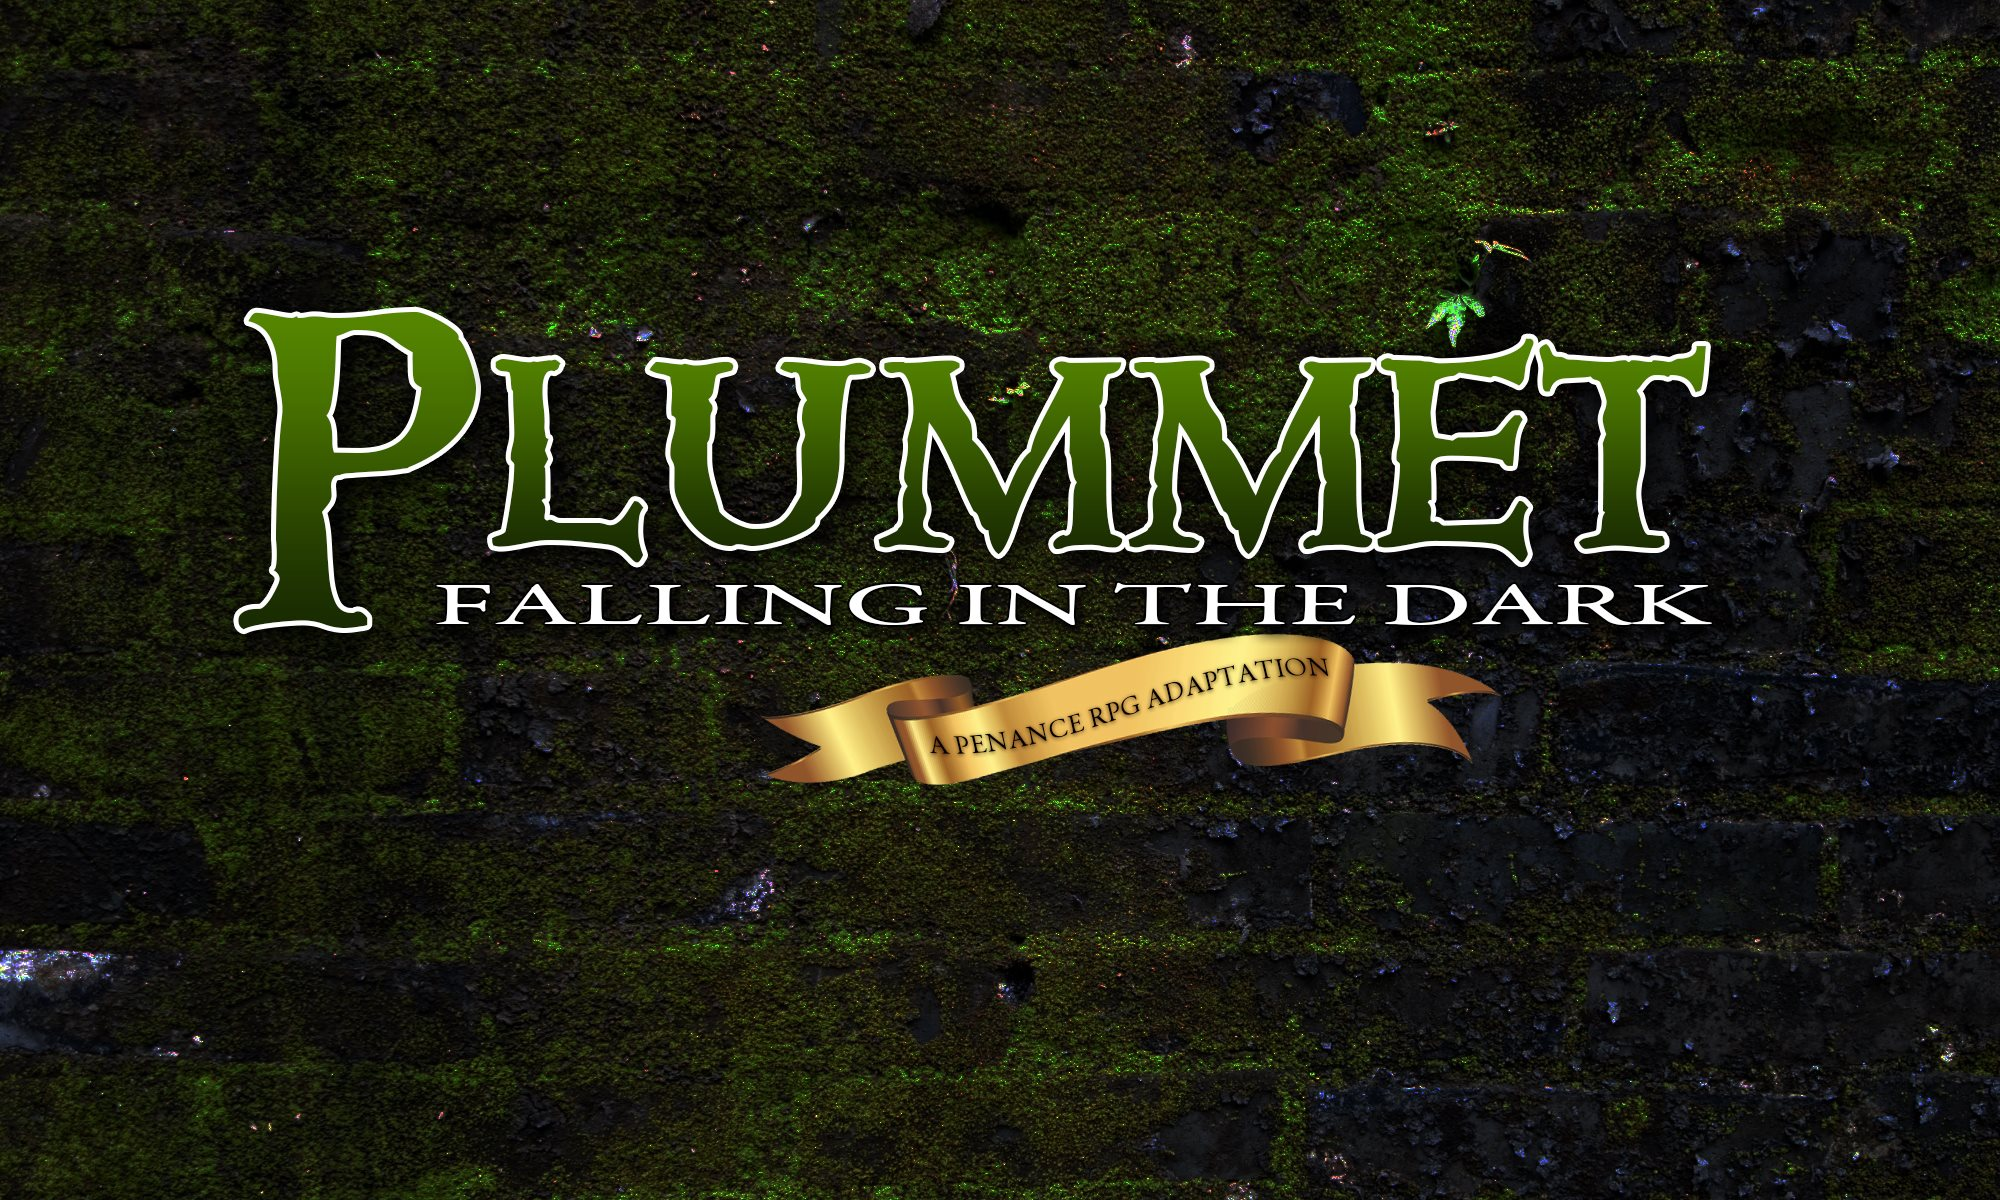 Plummet, Penance RPG, #OpenTheDungeon, Halloween, Halloween 2019, Dorohirsk